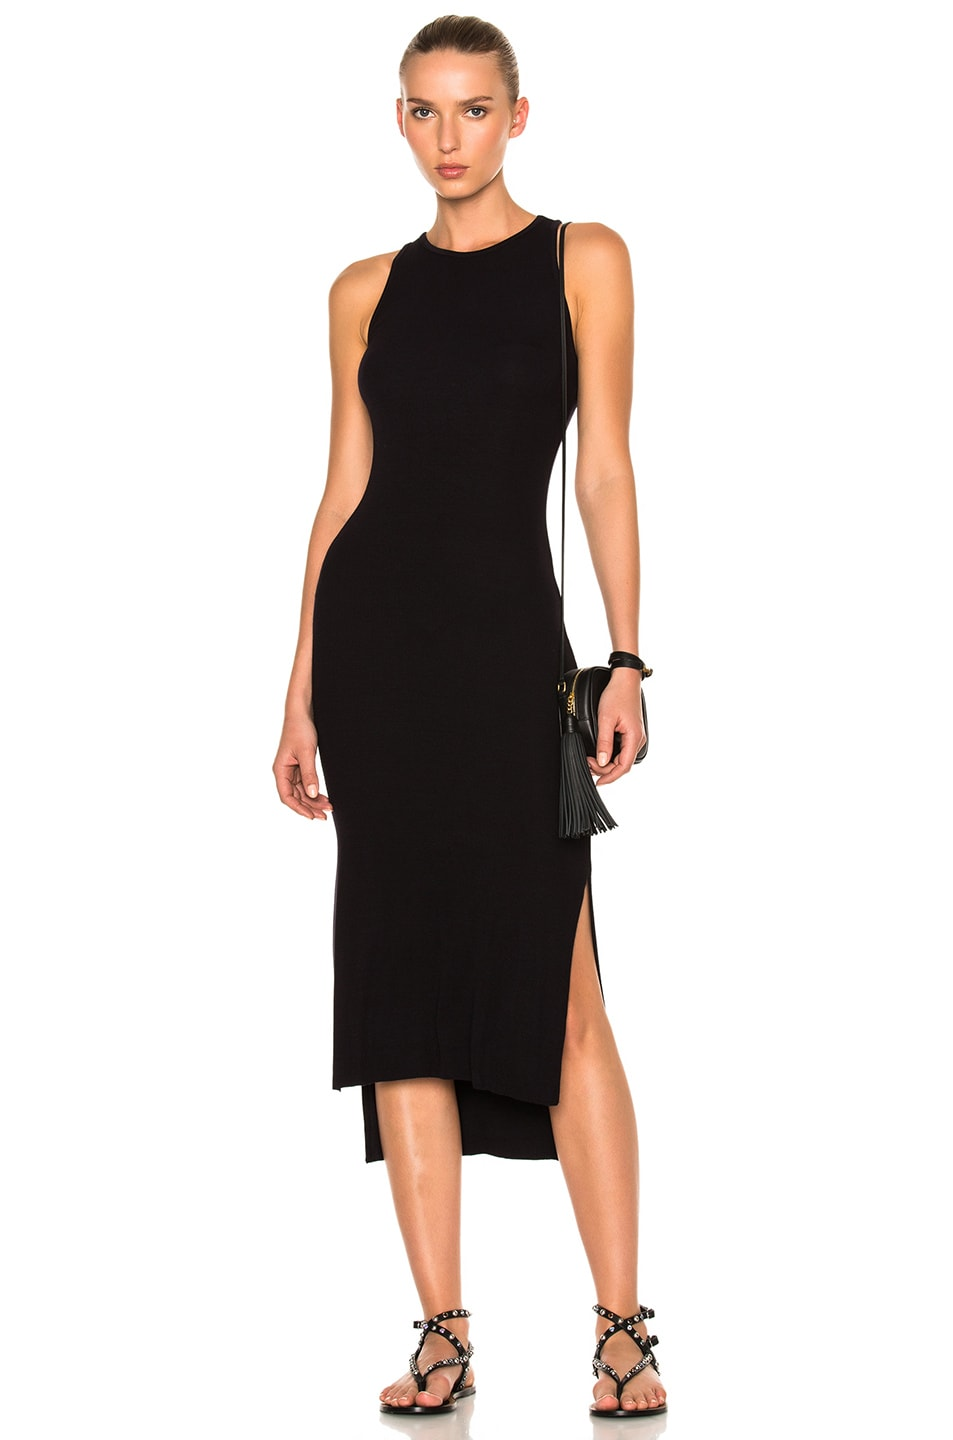 Enza Costa Woman One-shoulder Ribbed-knit Midi Dress Black Size M Enza Costa Get To Buy Sale Online Cheapest Cheap Online Sale Cheapest Price Manchester Sale Online Clearance Geniue Stockist uy3poYaVg